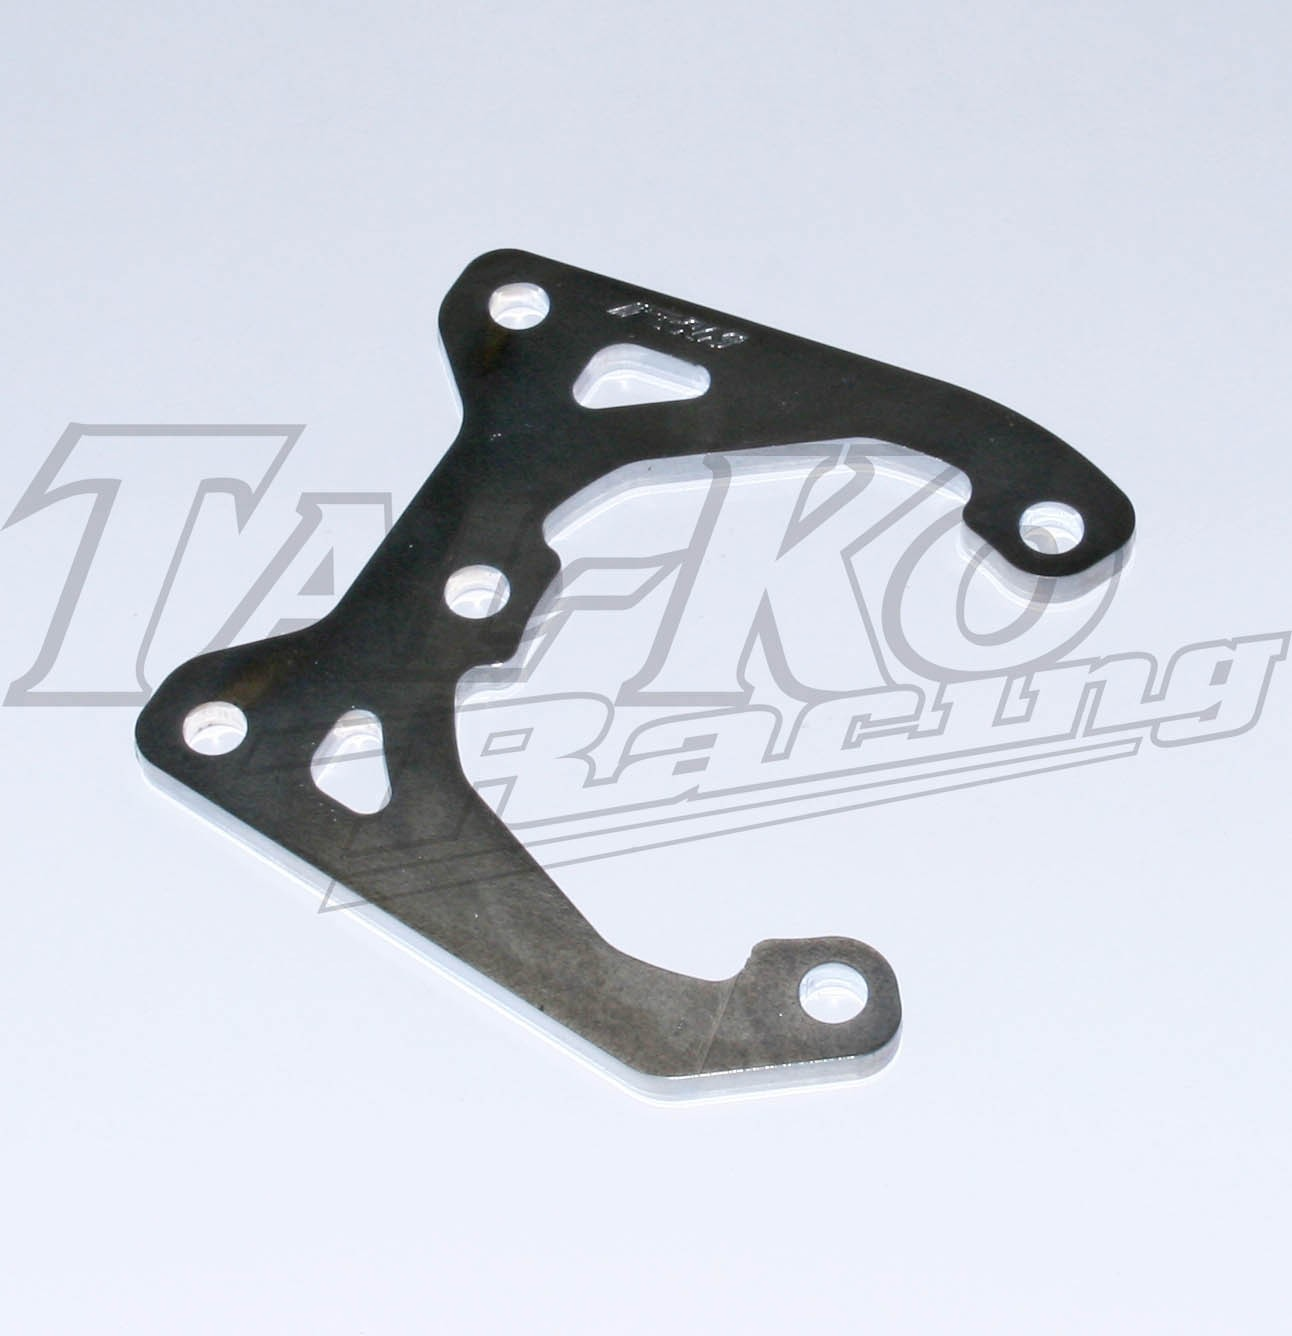 TAL-KO V05 REAR CALIPER SUPPORT PLATE 3H